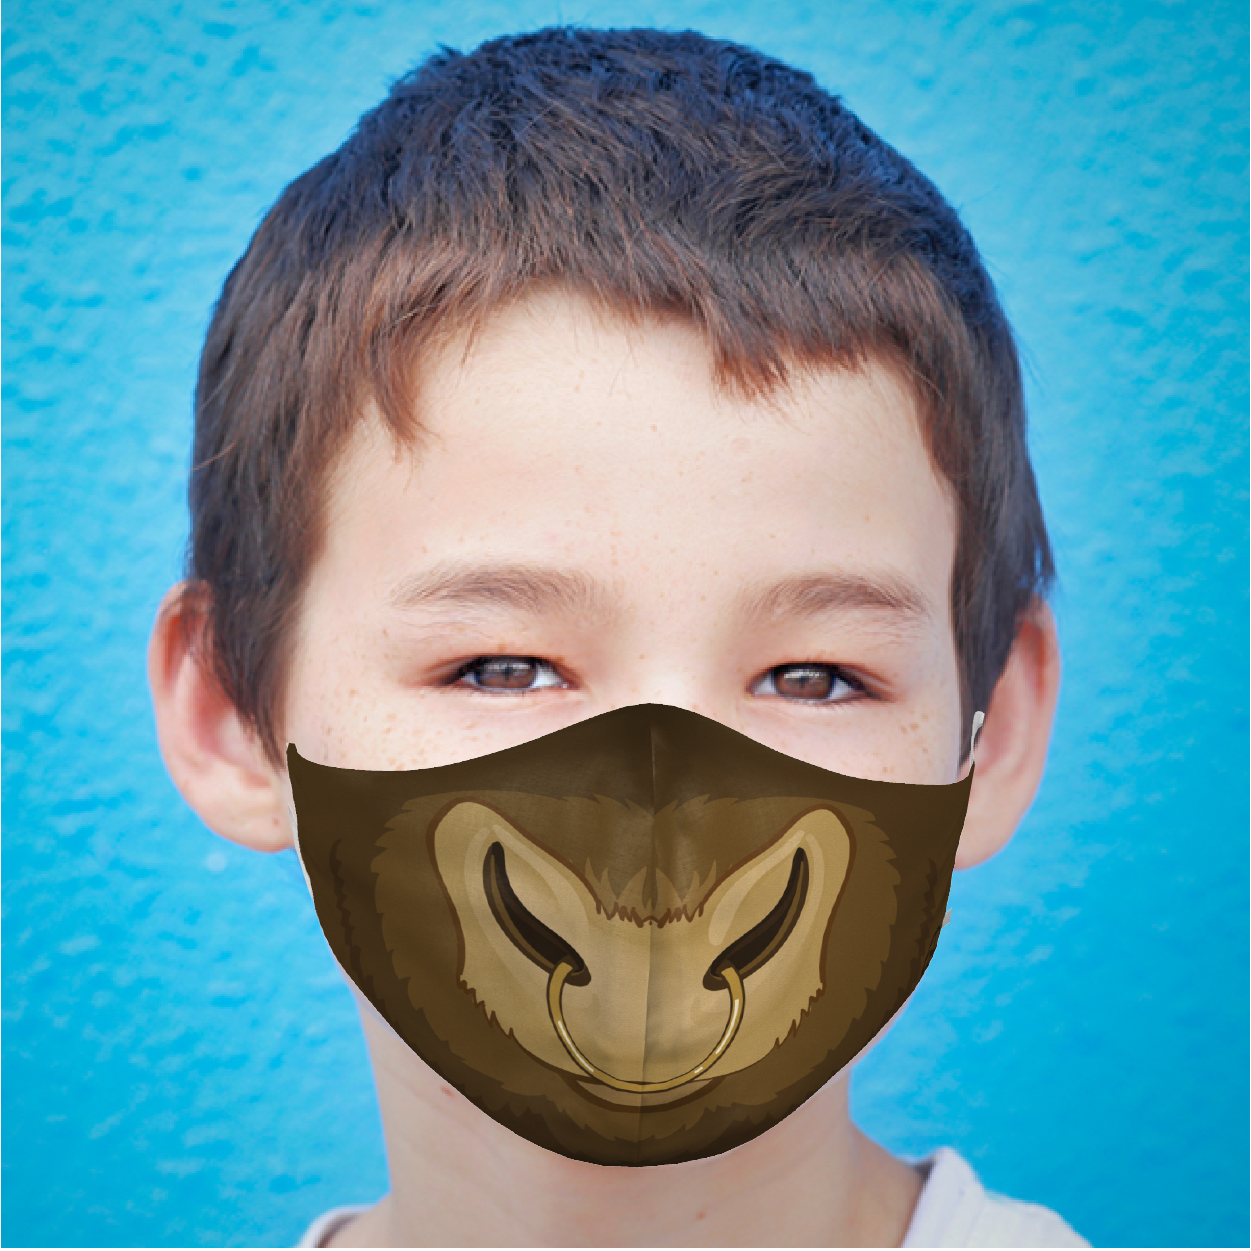 YOUTH BULL FACE MASK